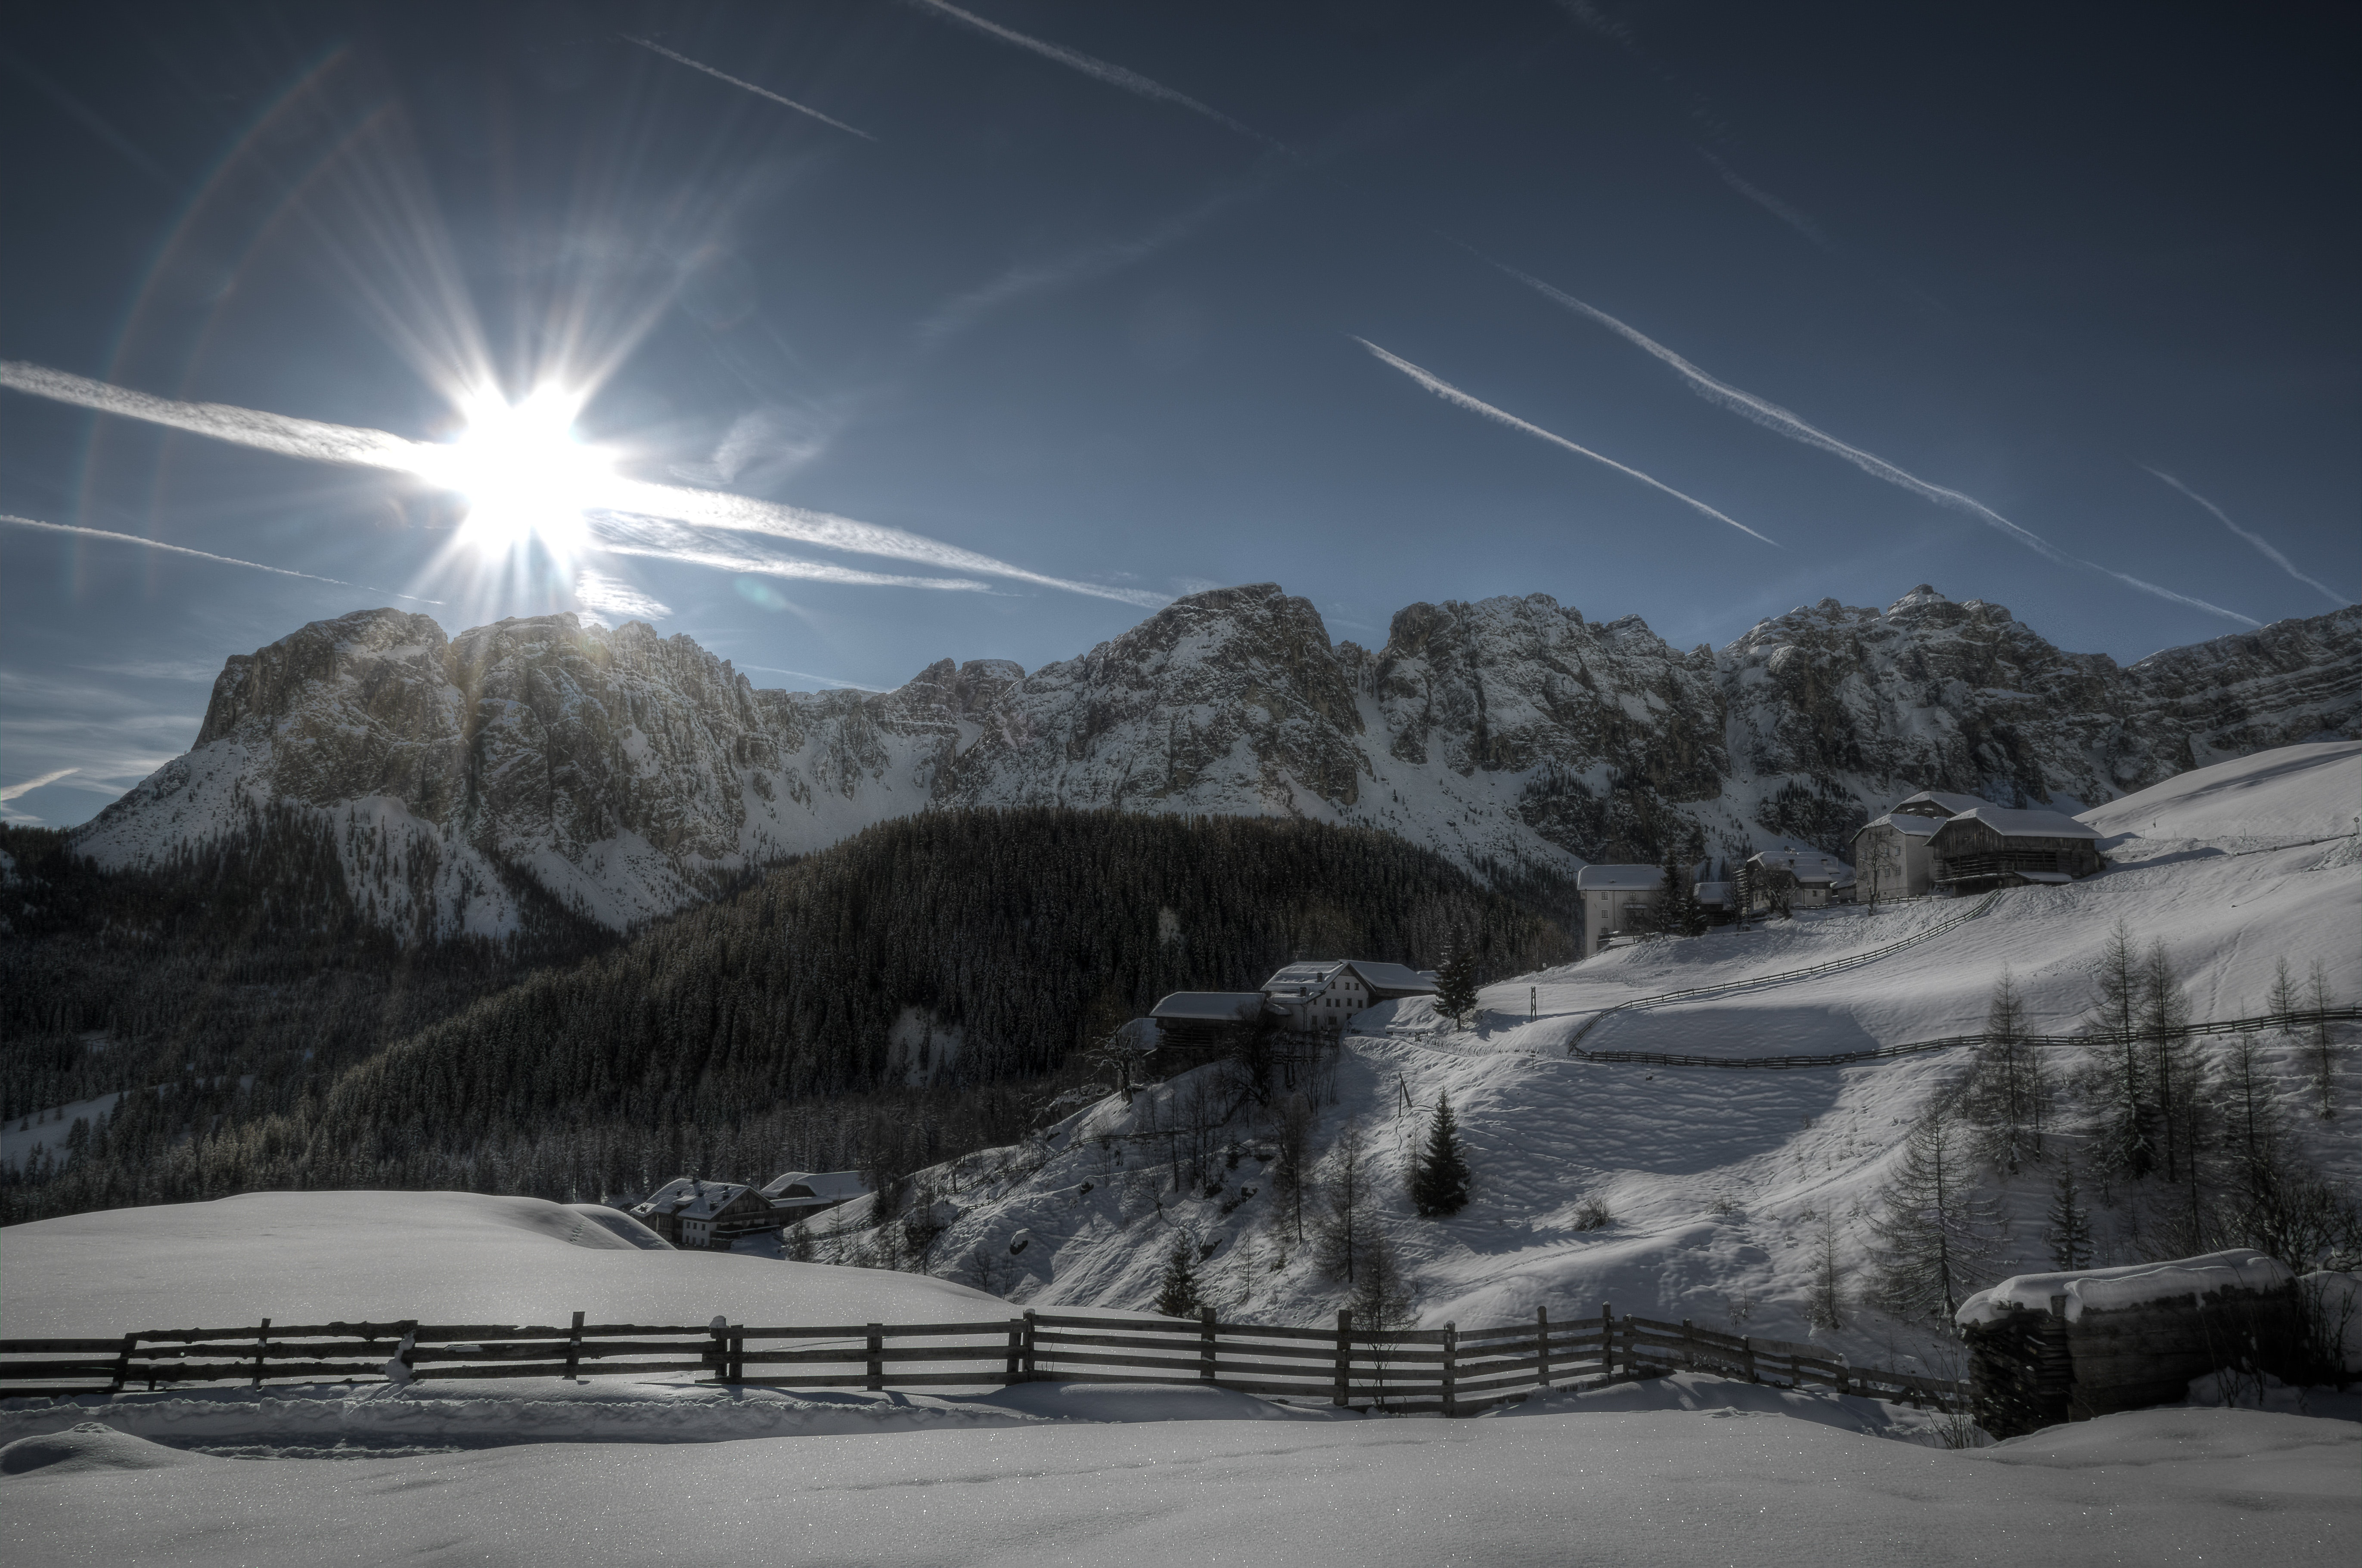 Snow Covered Mountain Illustration, Clouds, Outdoors, Winter, Trees, HQ Photo